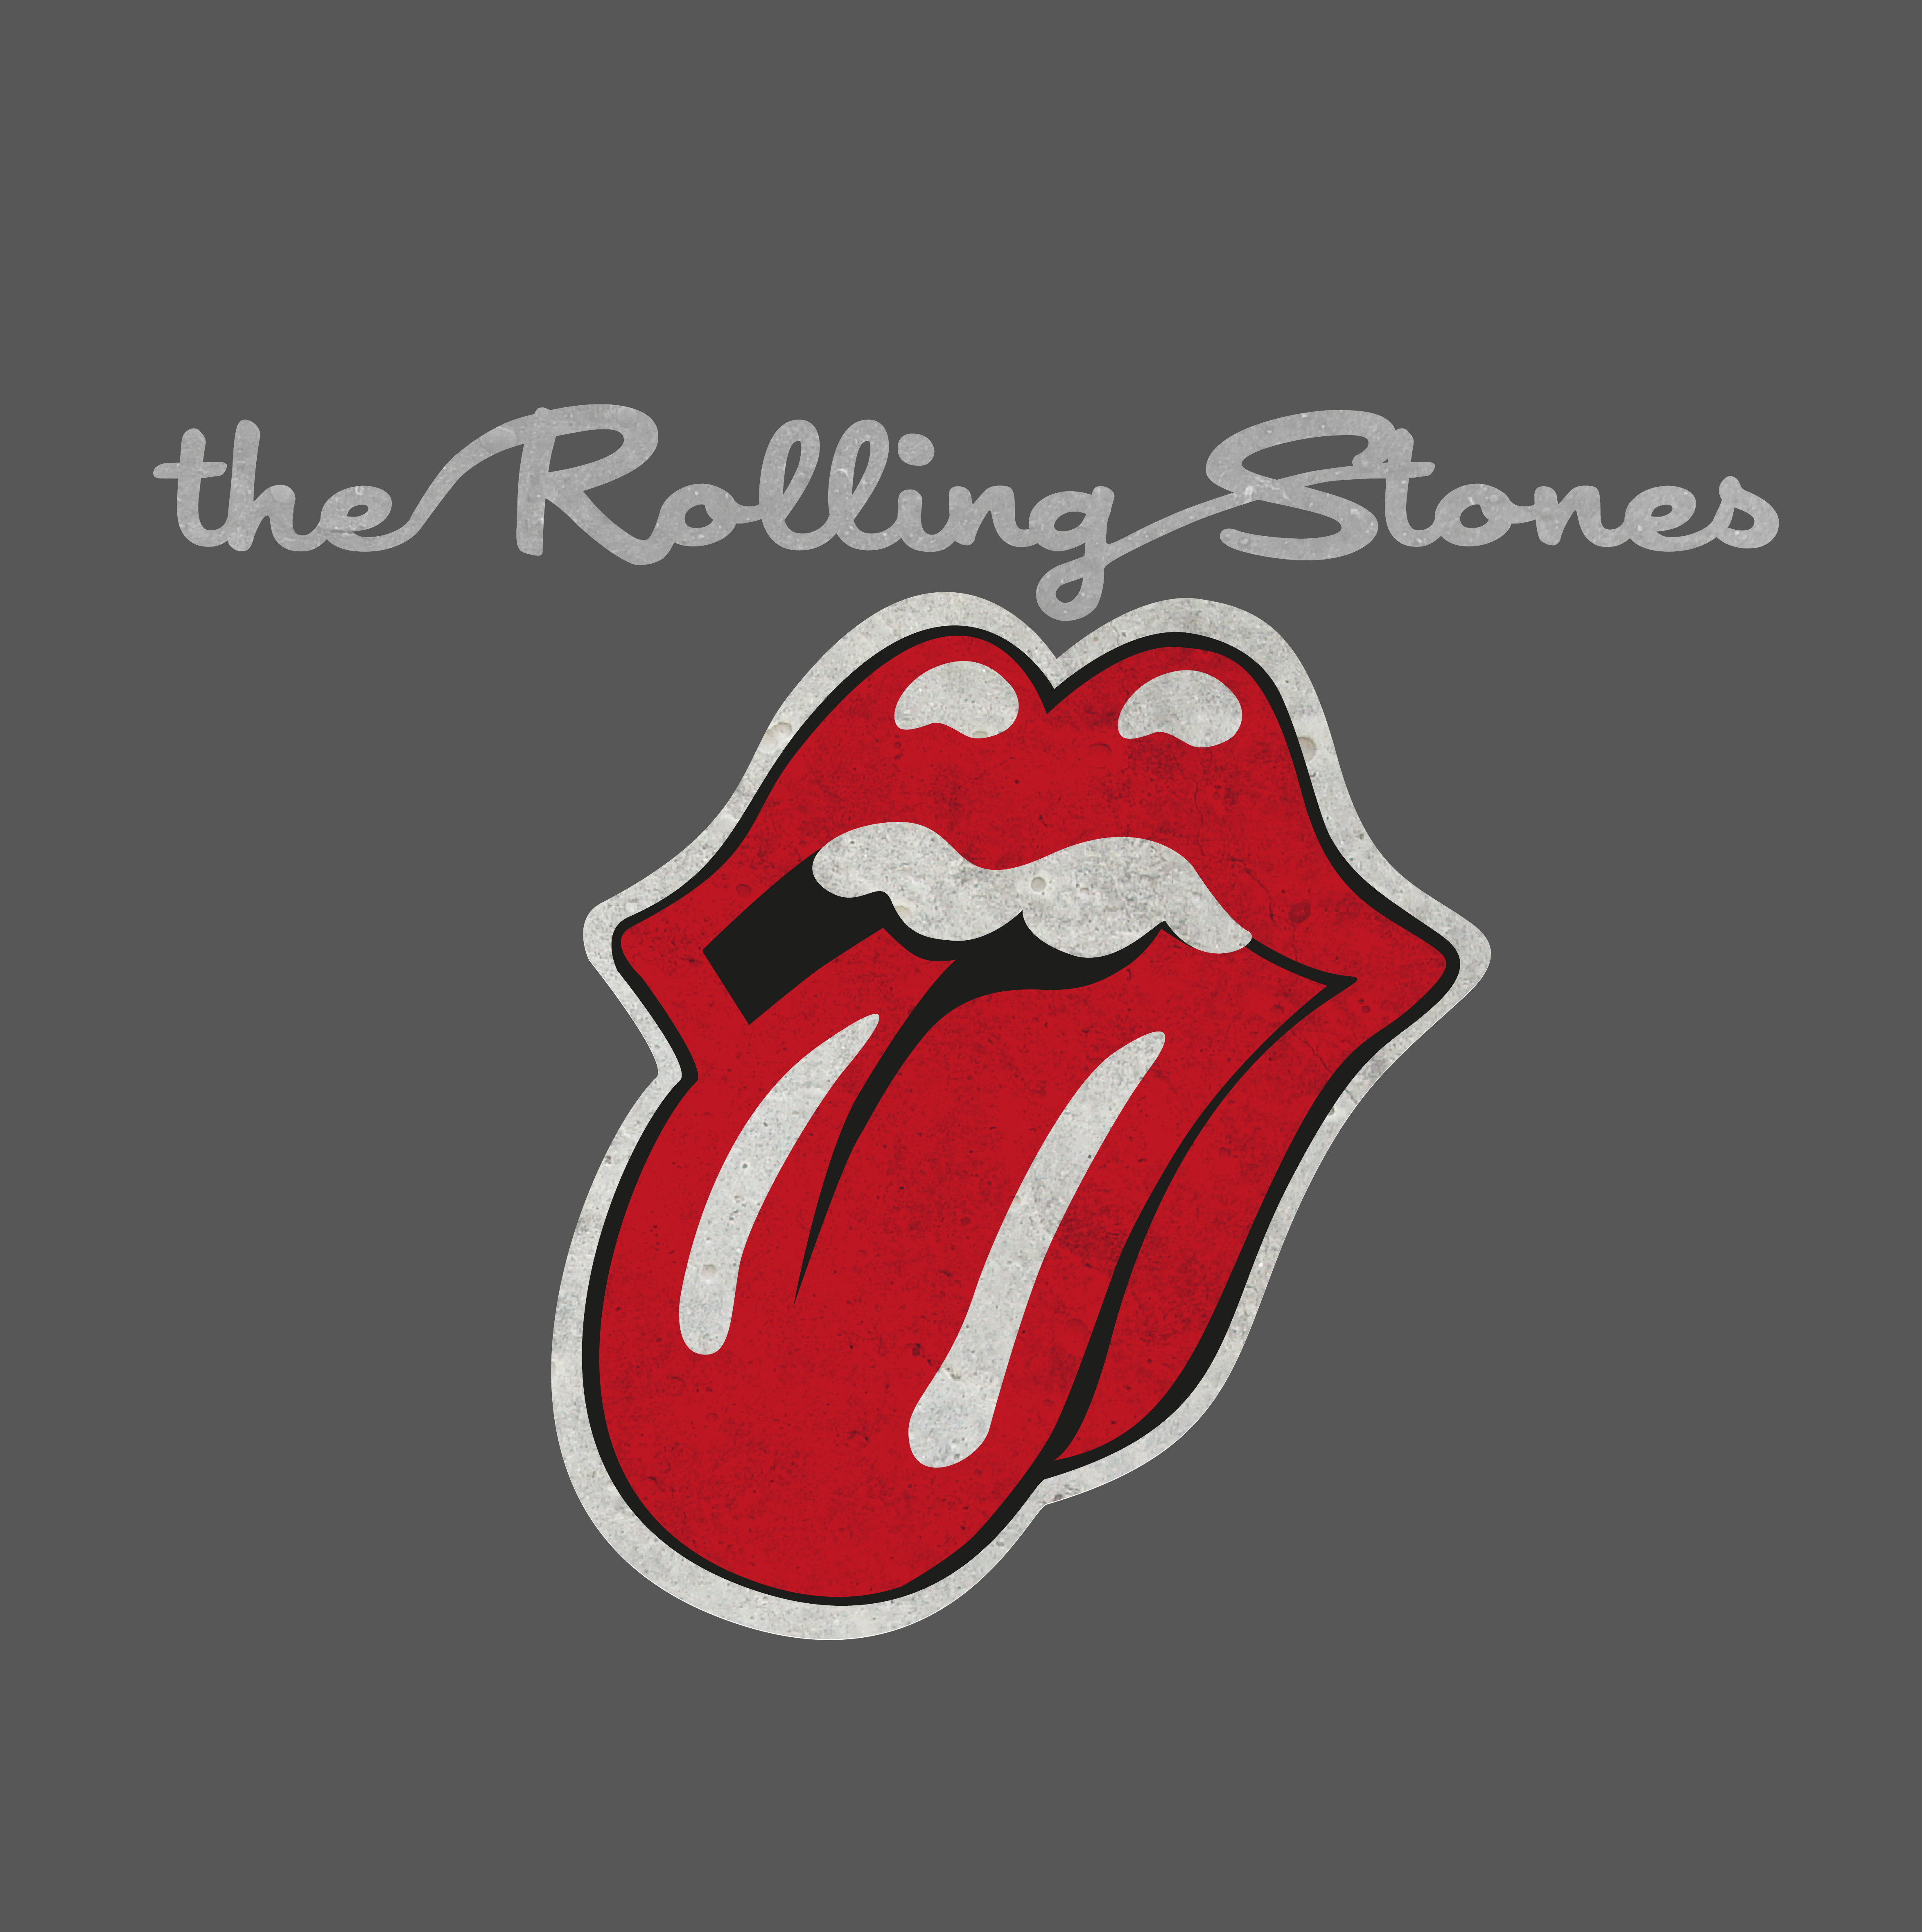 Rolling Stones Logo Wallpaper Images Pictures   Becuo 4695x4720